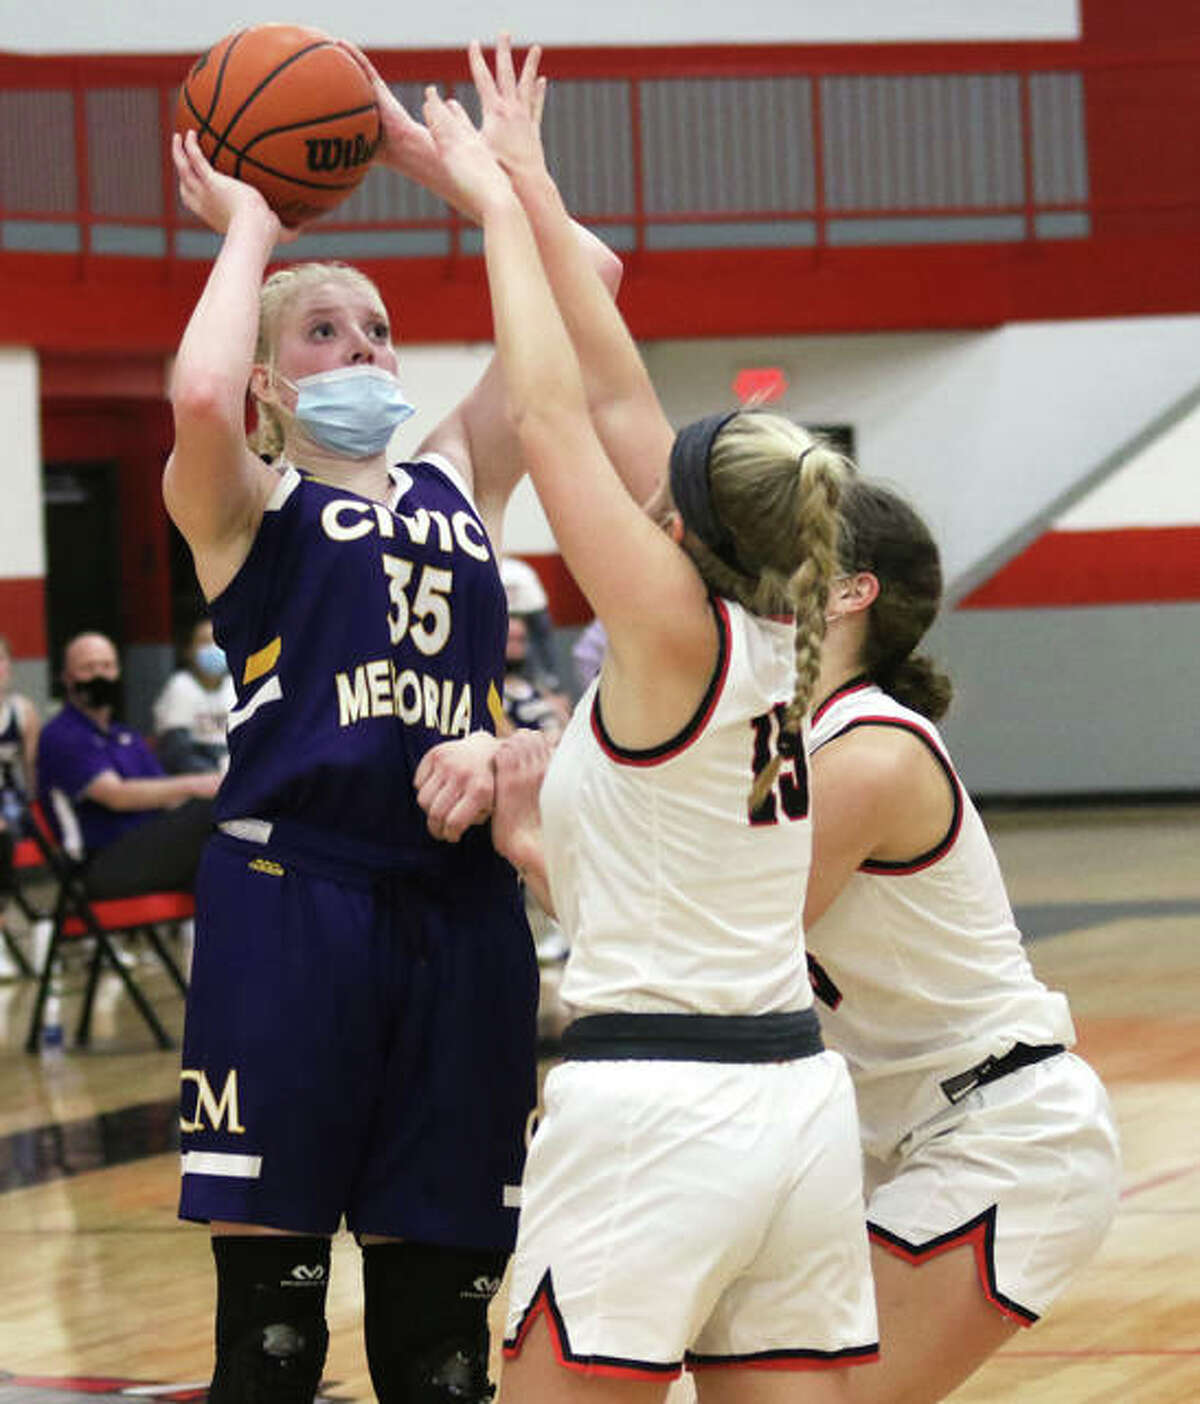 CM's Claire Christeson (left) shoots over Highland's Grace Wilke (15) and Bella LaPorta on Thursday night in Highland.